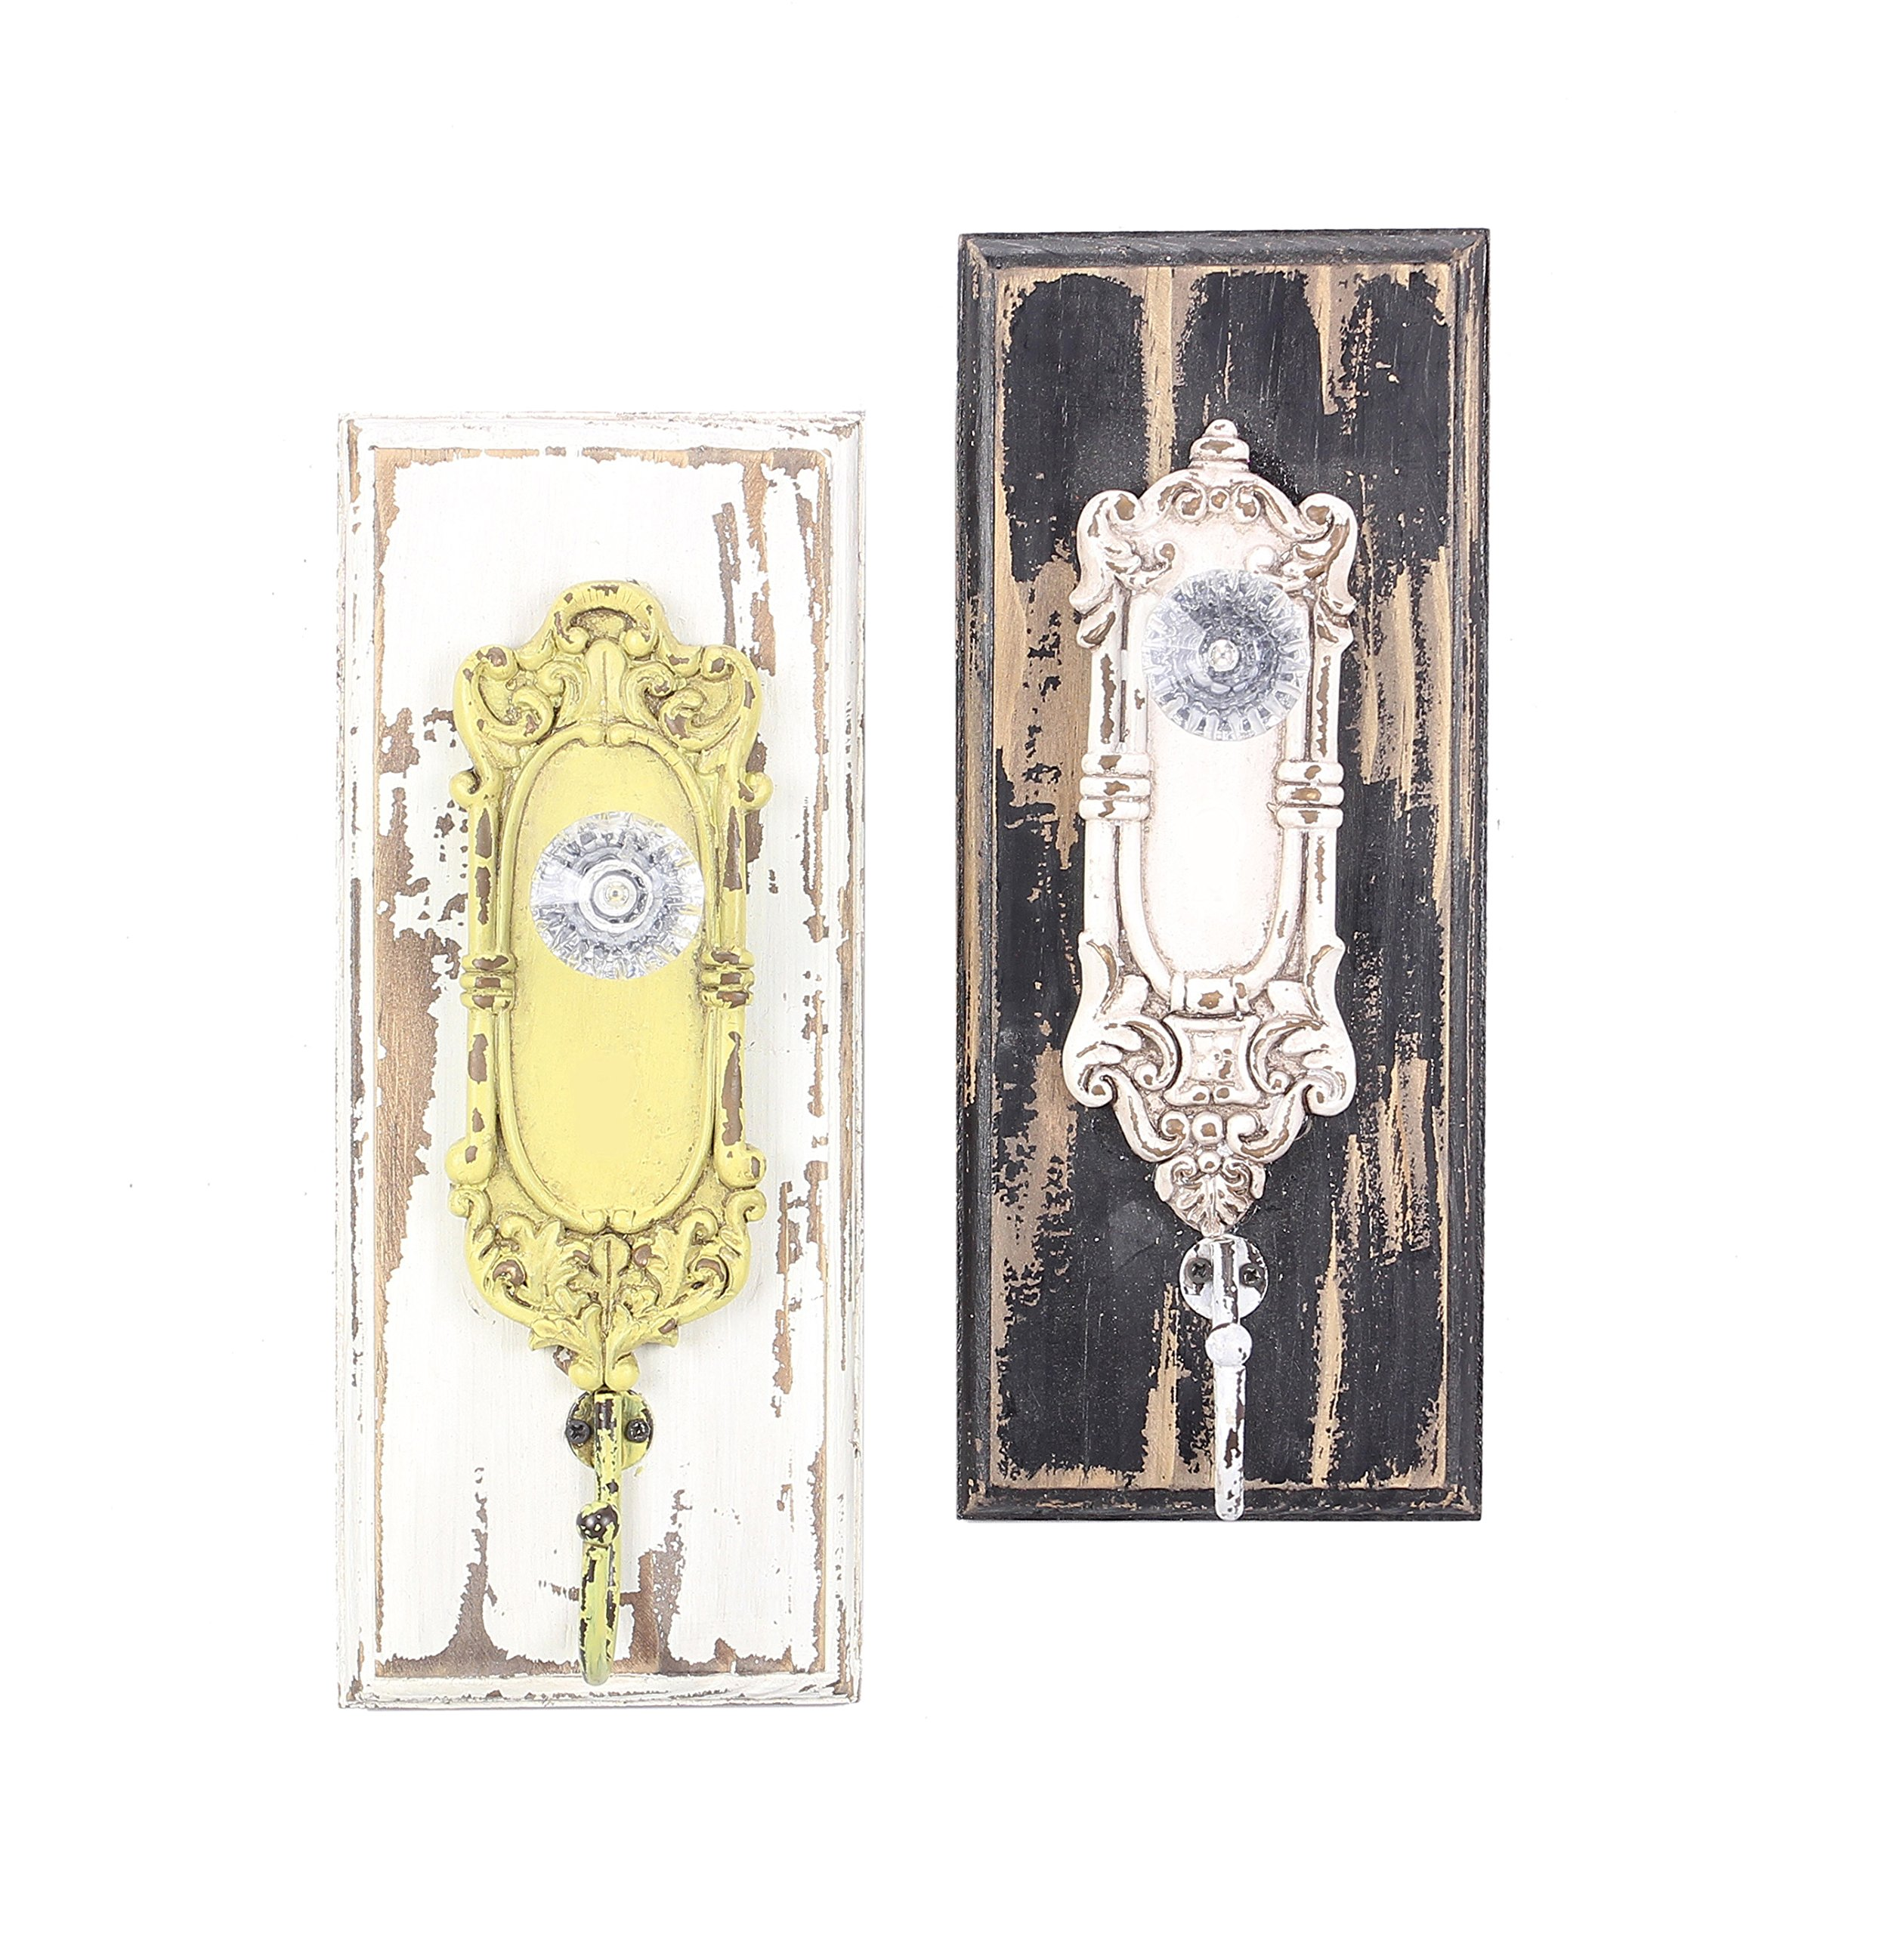 Young's Painted Distressed Wood Vintage Look Ornate Glass Door Knob Wall Hooks Set of 2,Cream, Yellow, Brown,One size